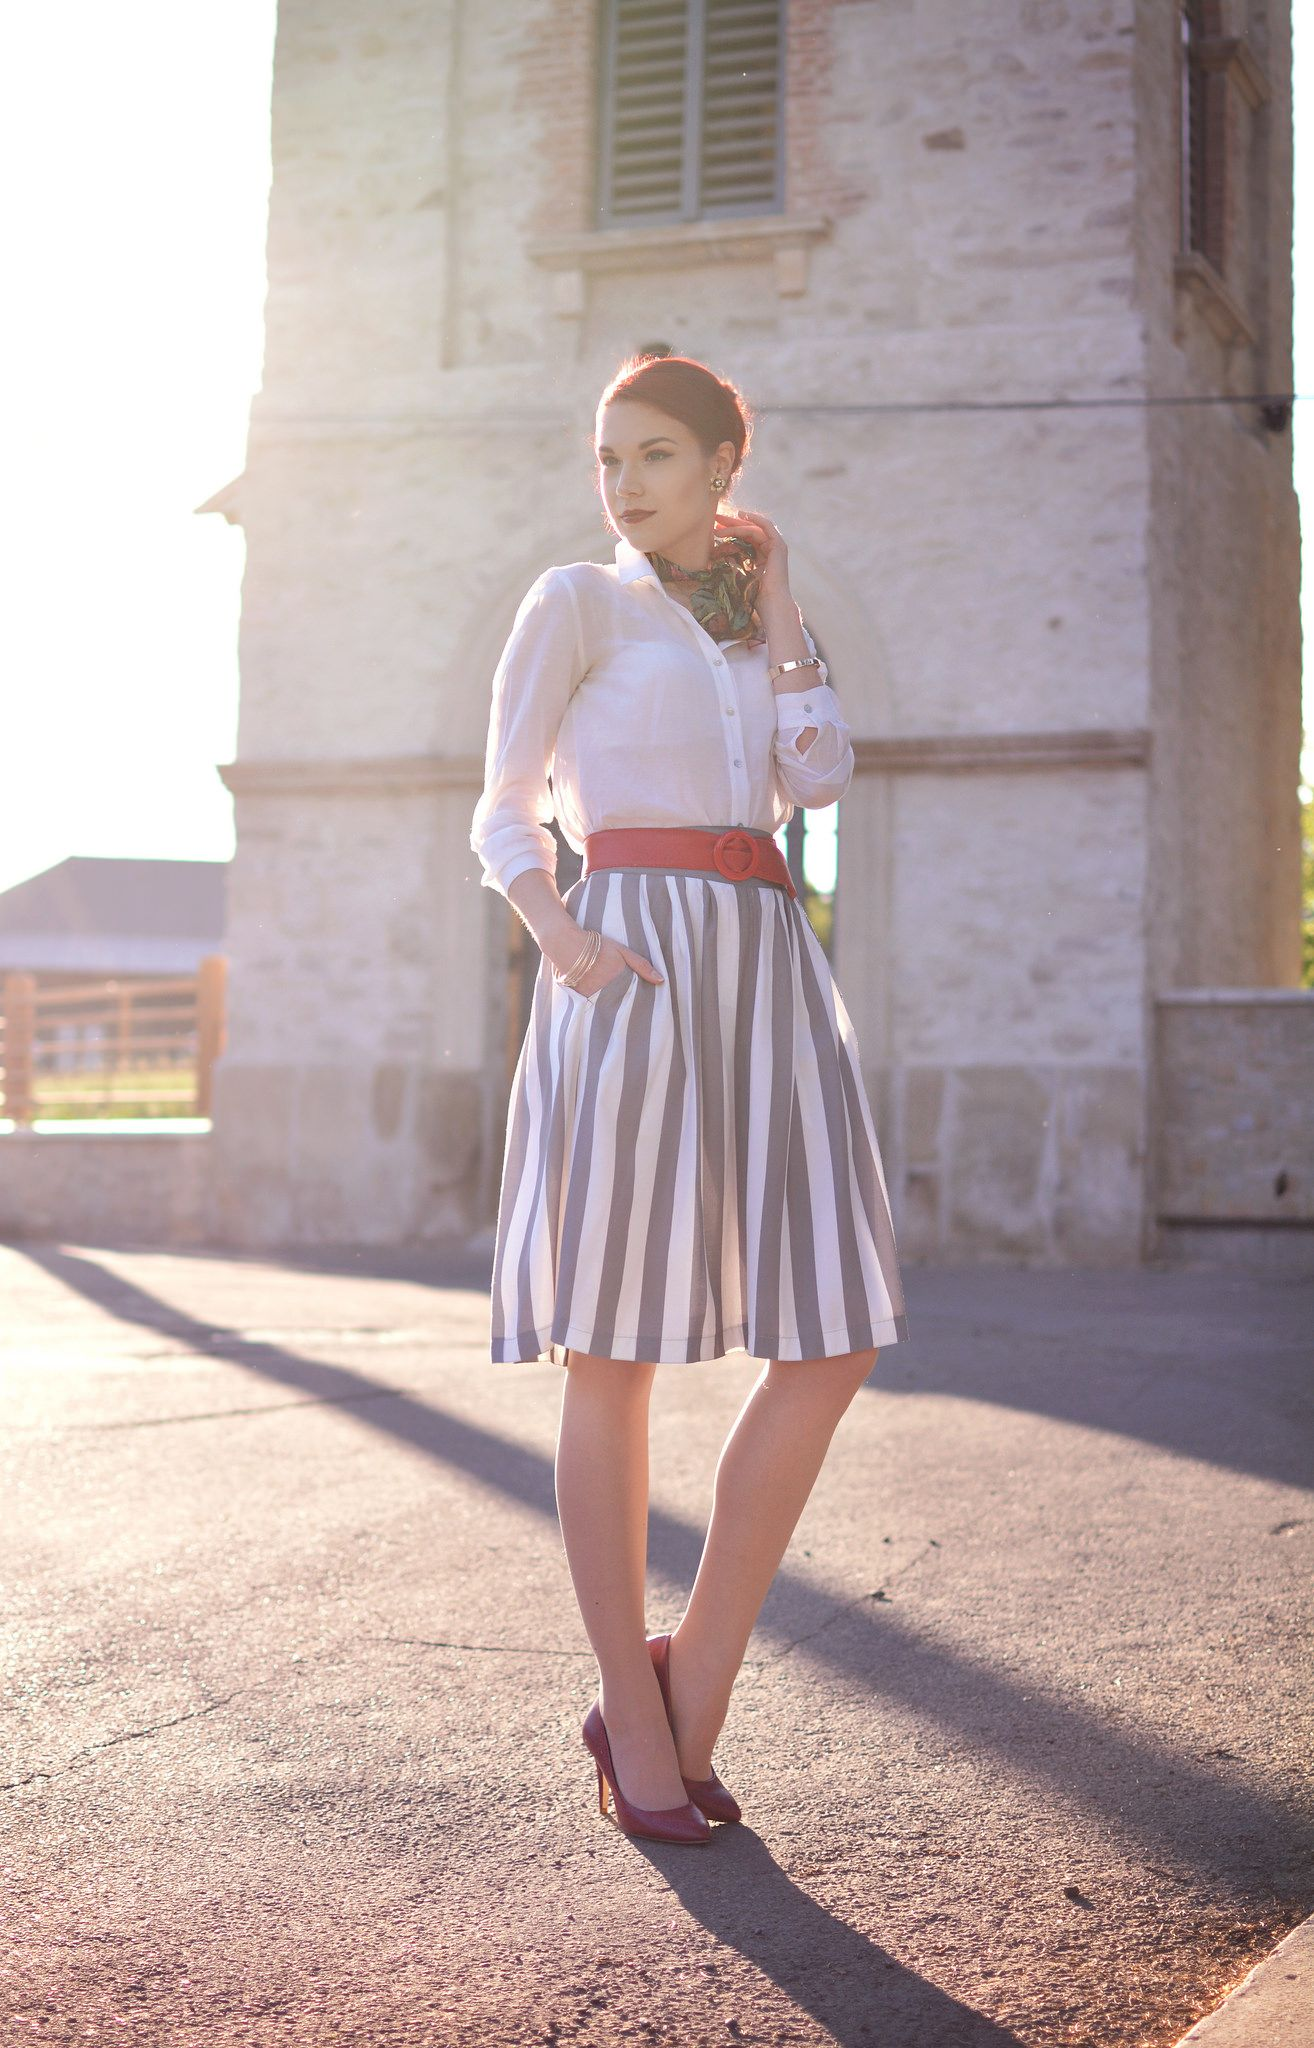 Stripped skirt bloggers uc i the wonder fashion pinterest